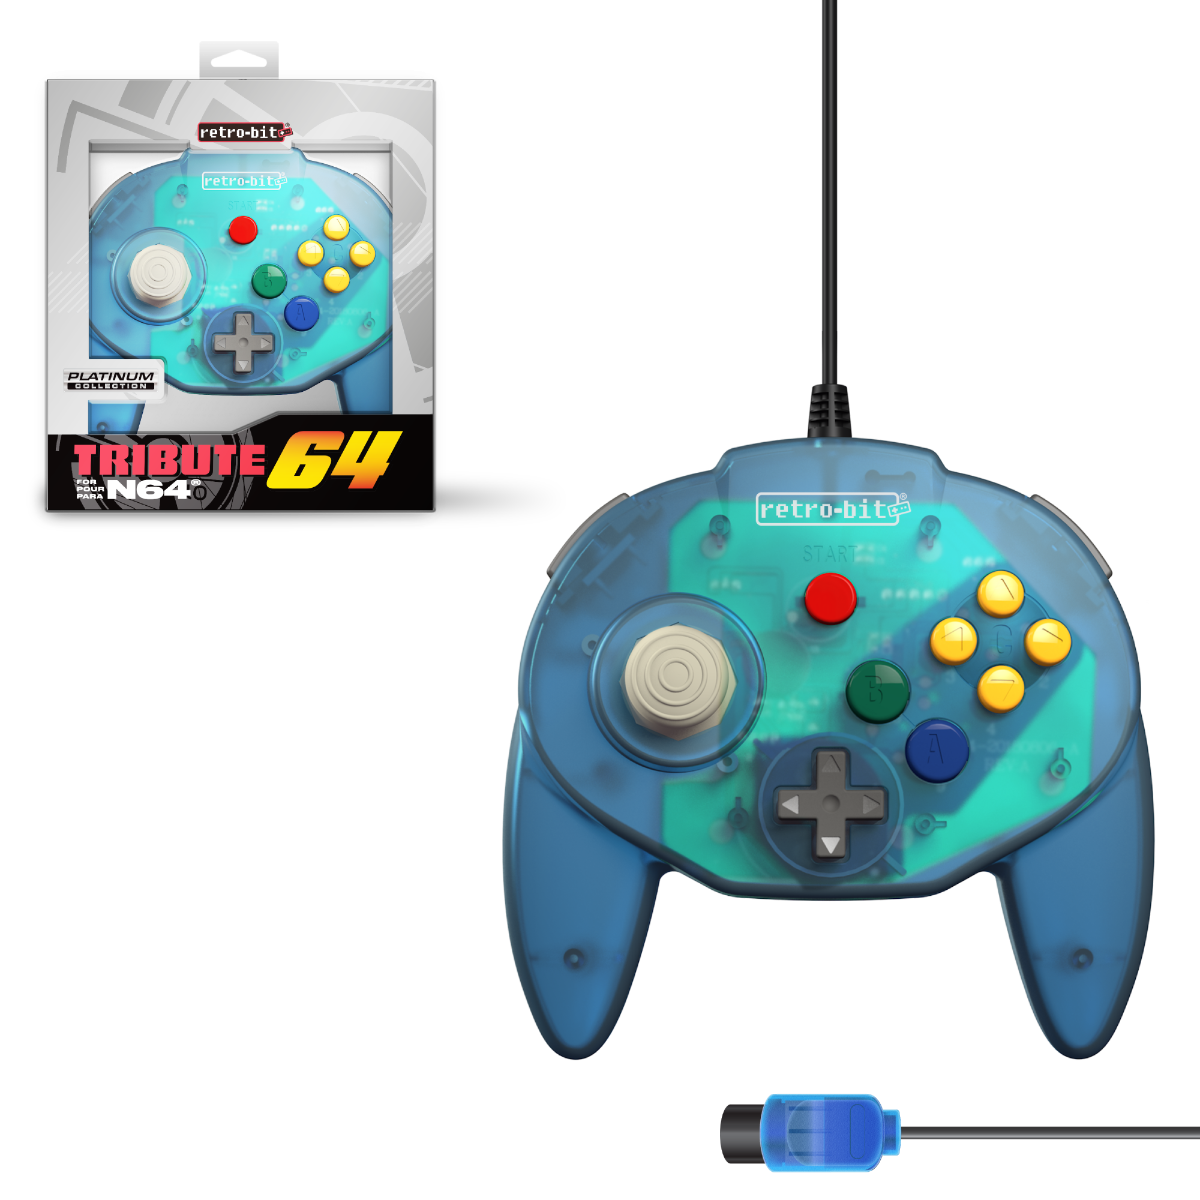 Tribute64, Ocean Blue, N64, nintendo 64, tribute